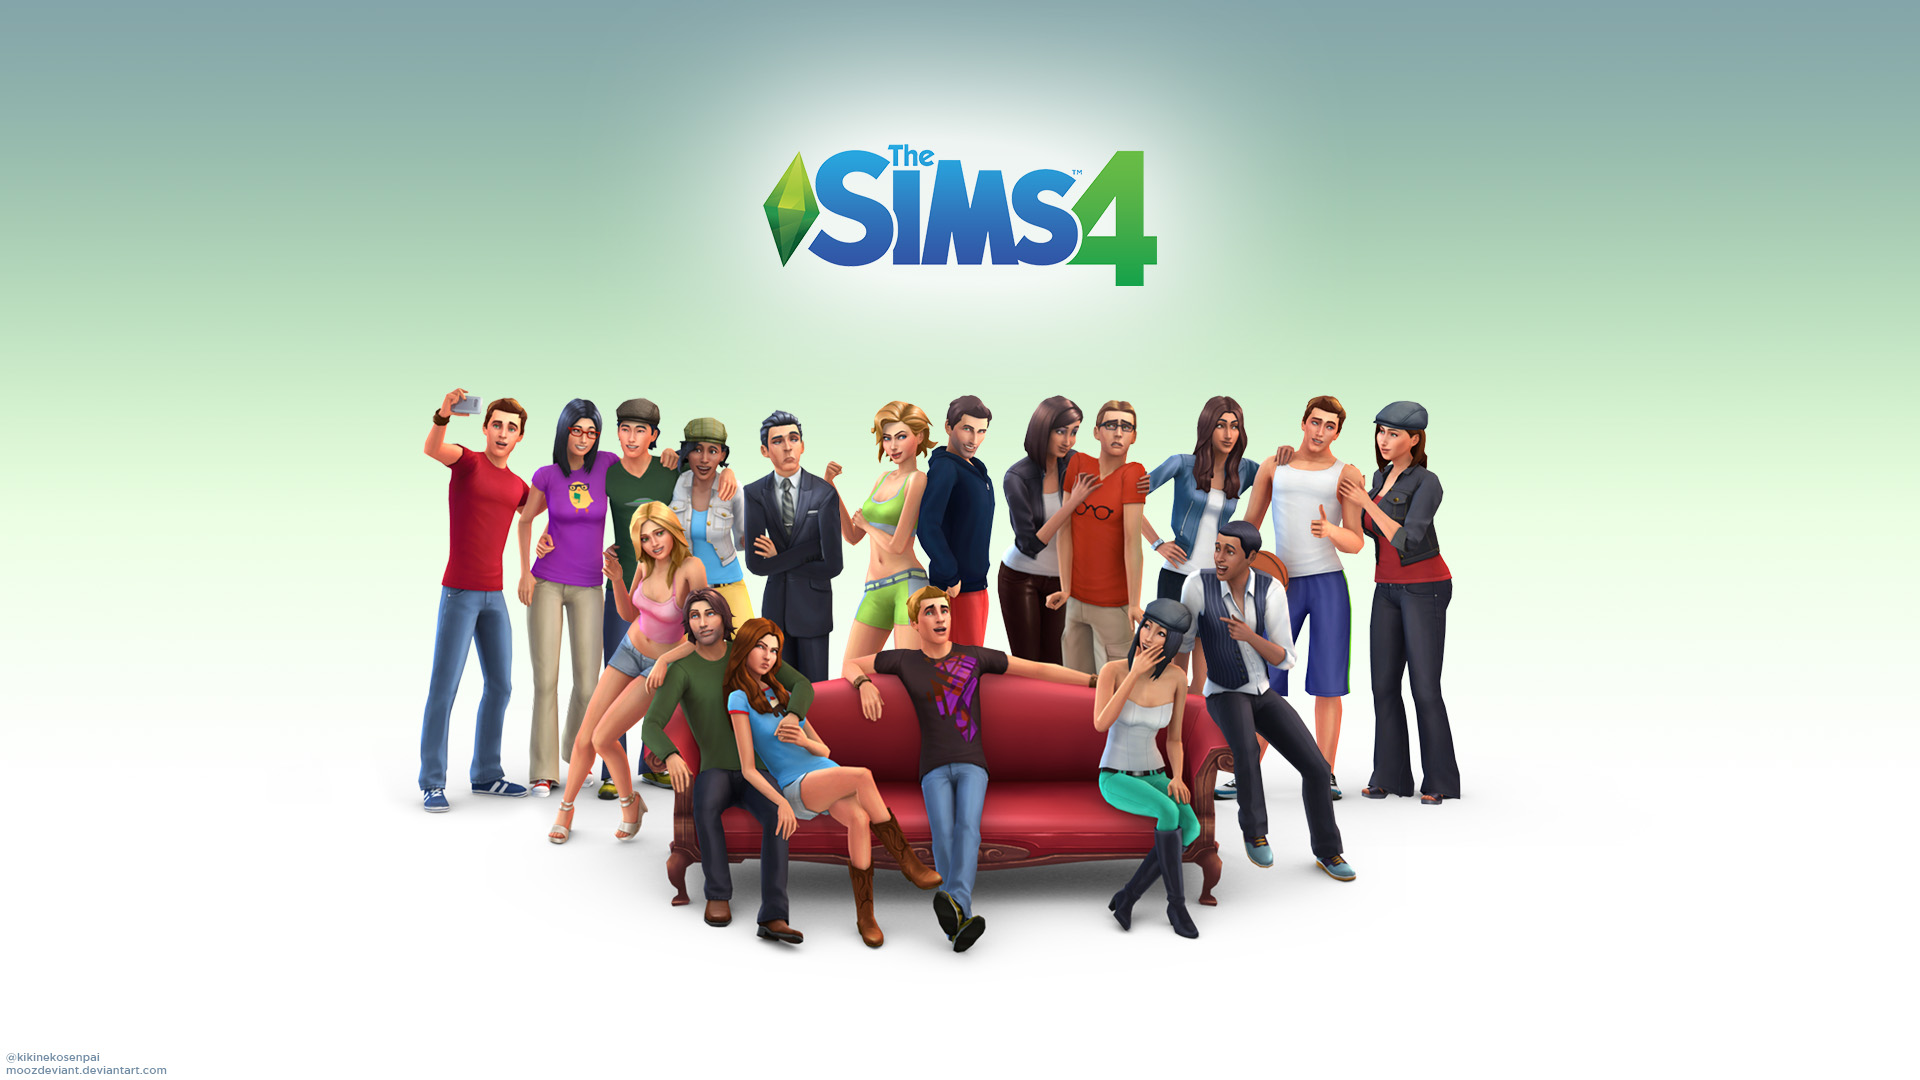 sims 4 video game review on What's worse: one reviewer saying your game stinks or review copies  mysteriously  my sims 3 cats can sit on laps, haven't seen that in 4,the hug   especially a video game like the sims, where there is so much little details.